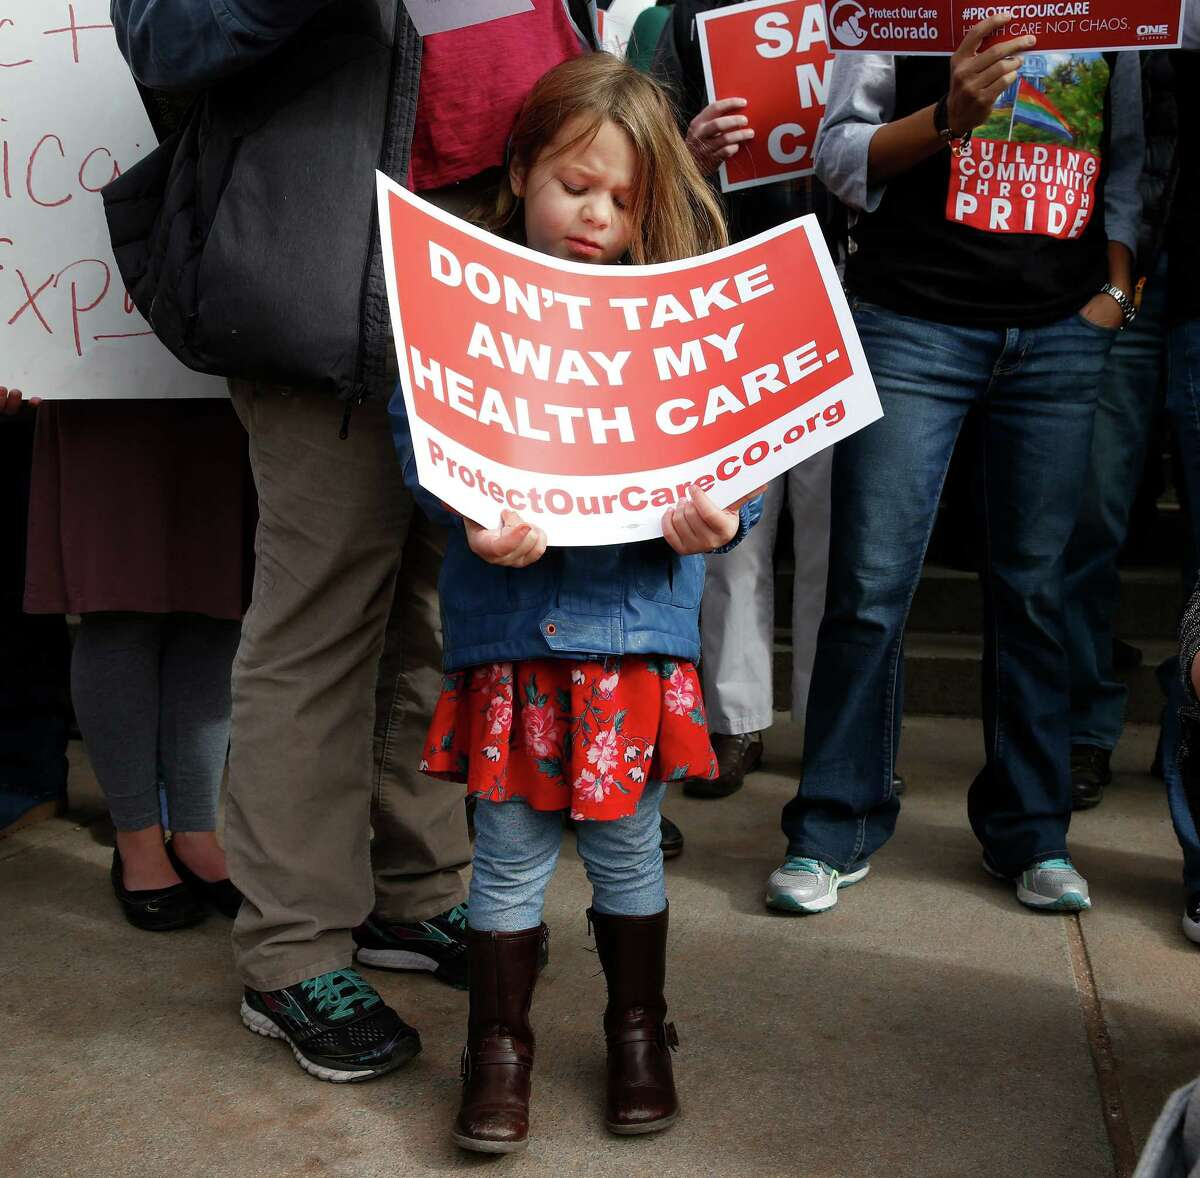 A girl stands holding a sign alongside supporters of the Affordable Care Act who are also opponents of Colorado's GOP-led plan to undo Colorado's state-run insurance exchange at a rally on the state Capitol steps in Denver, Tuesday, Jan. 31, 2017. The state GOP measure, a bill which would dismantle Connect For Health Colorado within a year, is an indication of how Republicans plan to chip away at Obamacare. If the federal health care law remains unchanged, it would force Coloradans shopping for private insurance to use the federal exchange. (AP Photo/Brennan Linsley)